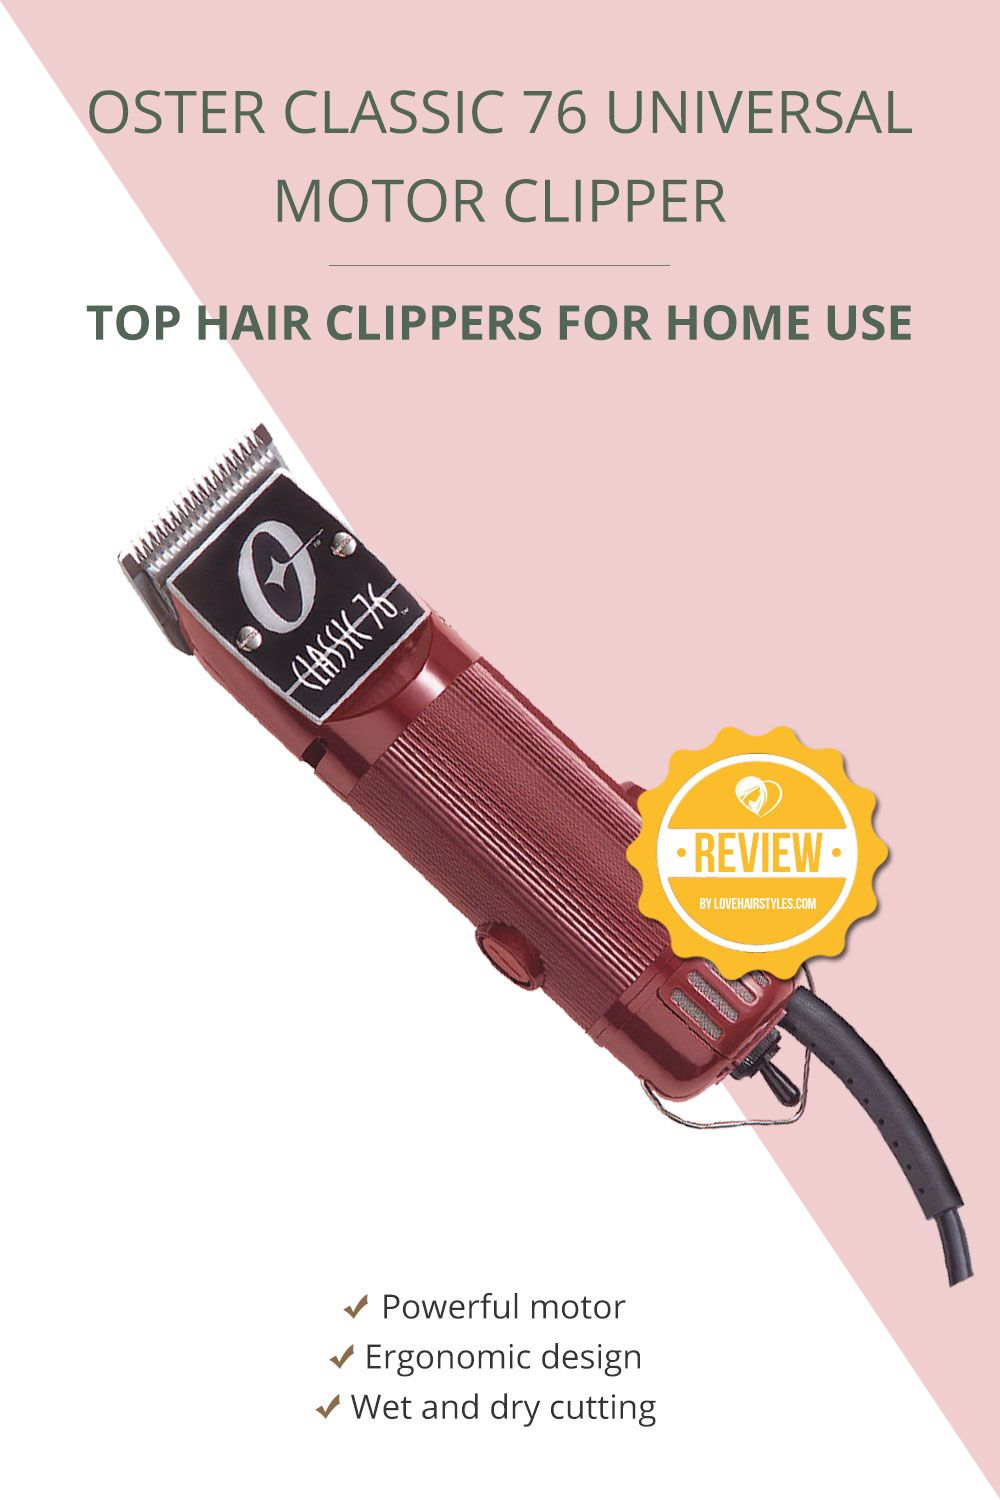 OSTER Classic 76 Universal Motor Clipper